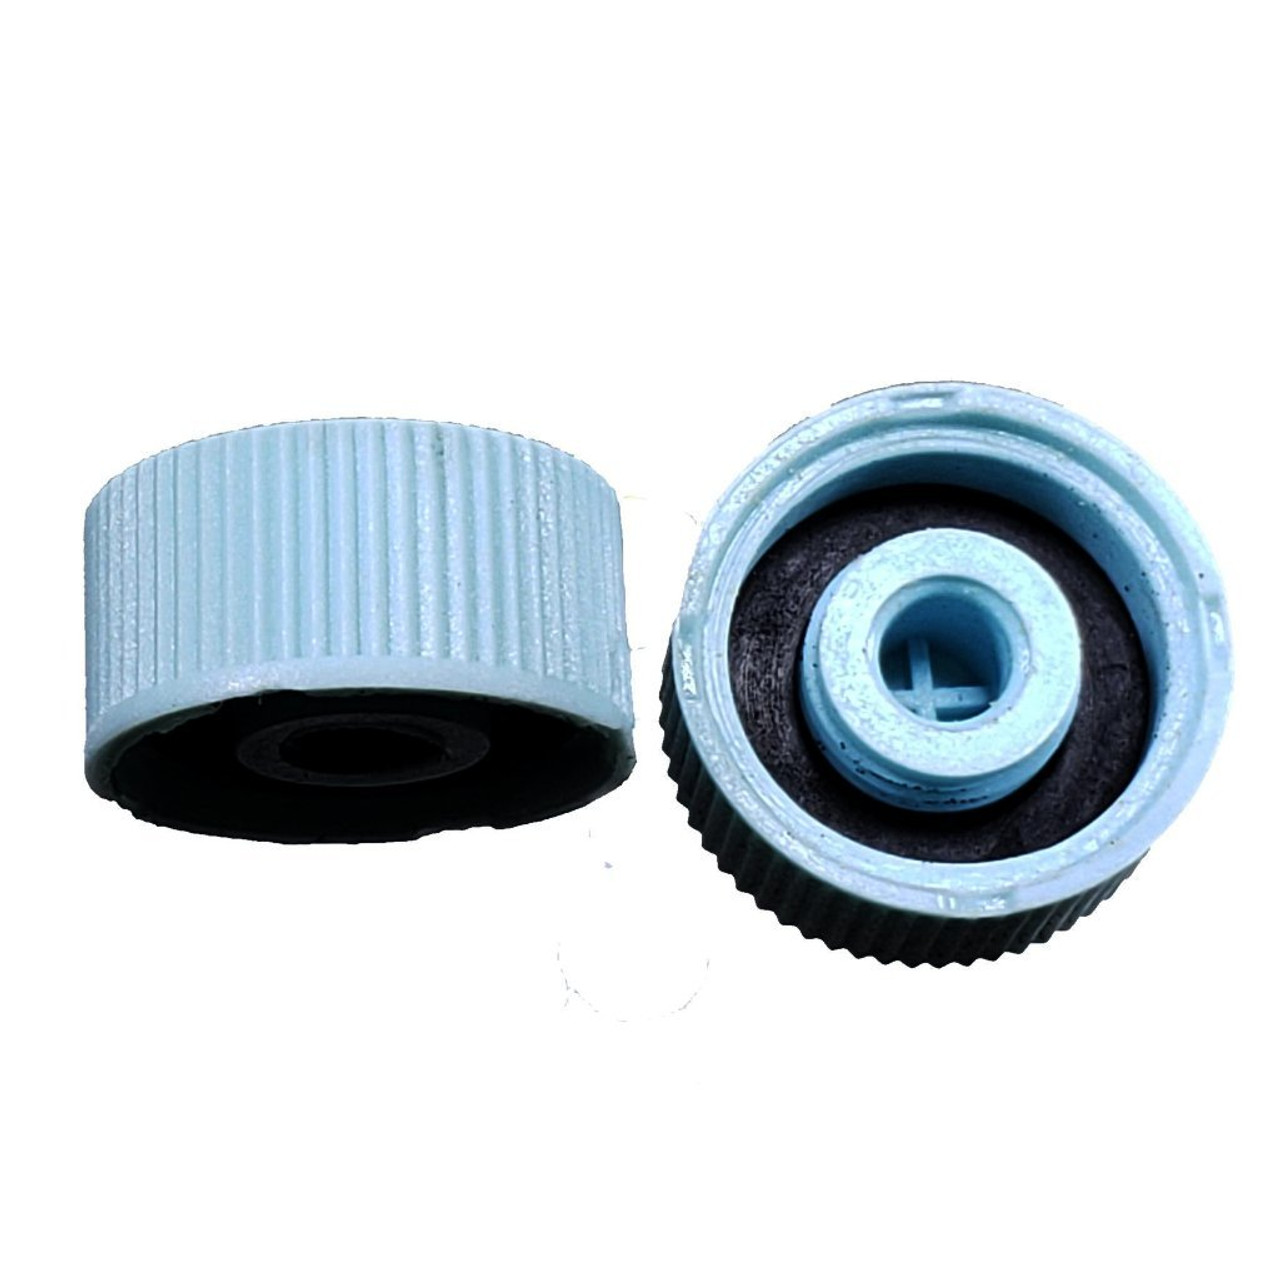 AC Service Valve Cap R134a - Blue High Side M10x1.25 - Interchanges: MT0311, 69501